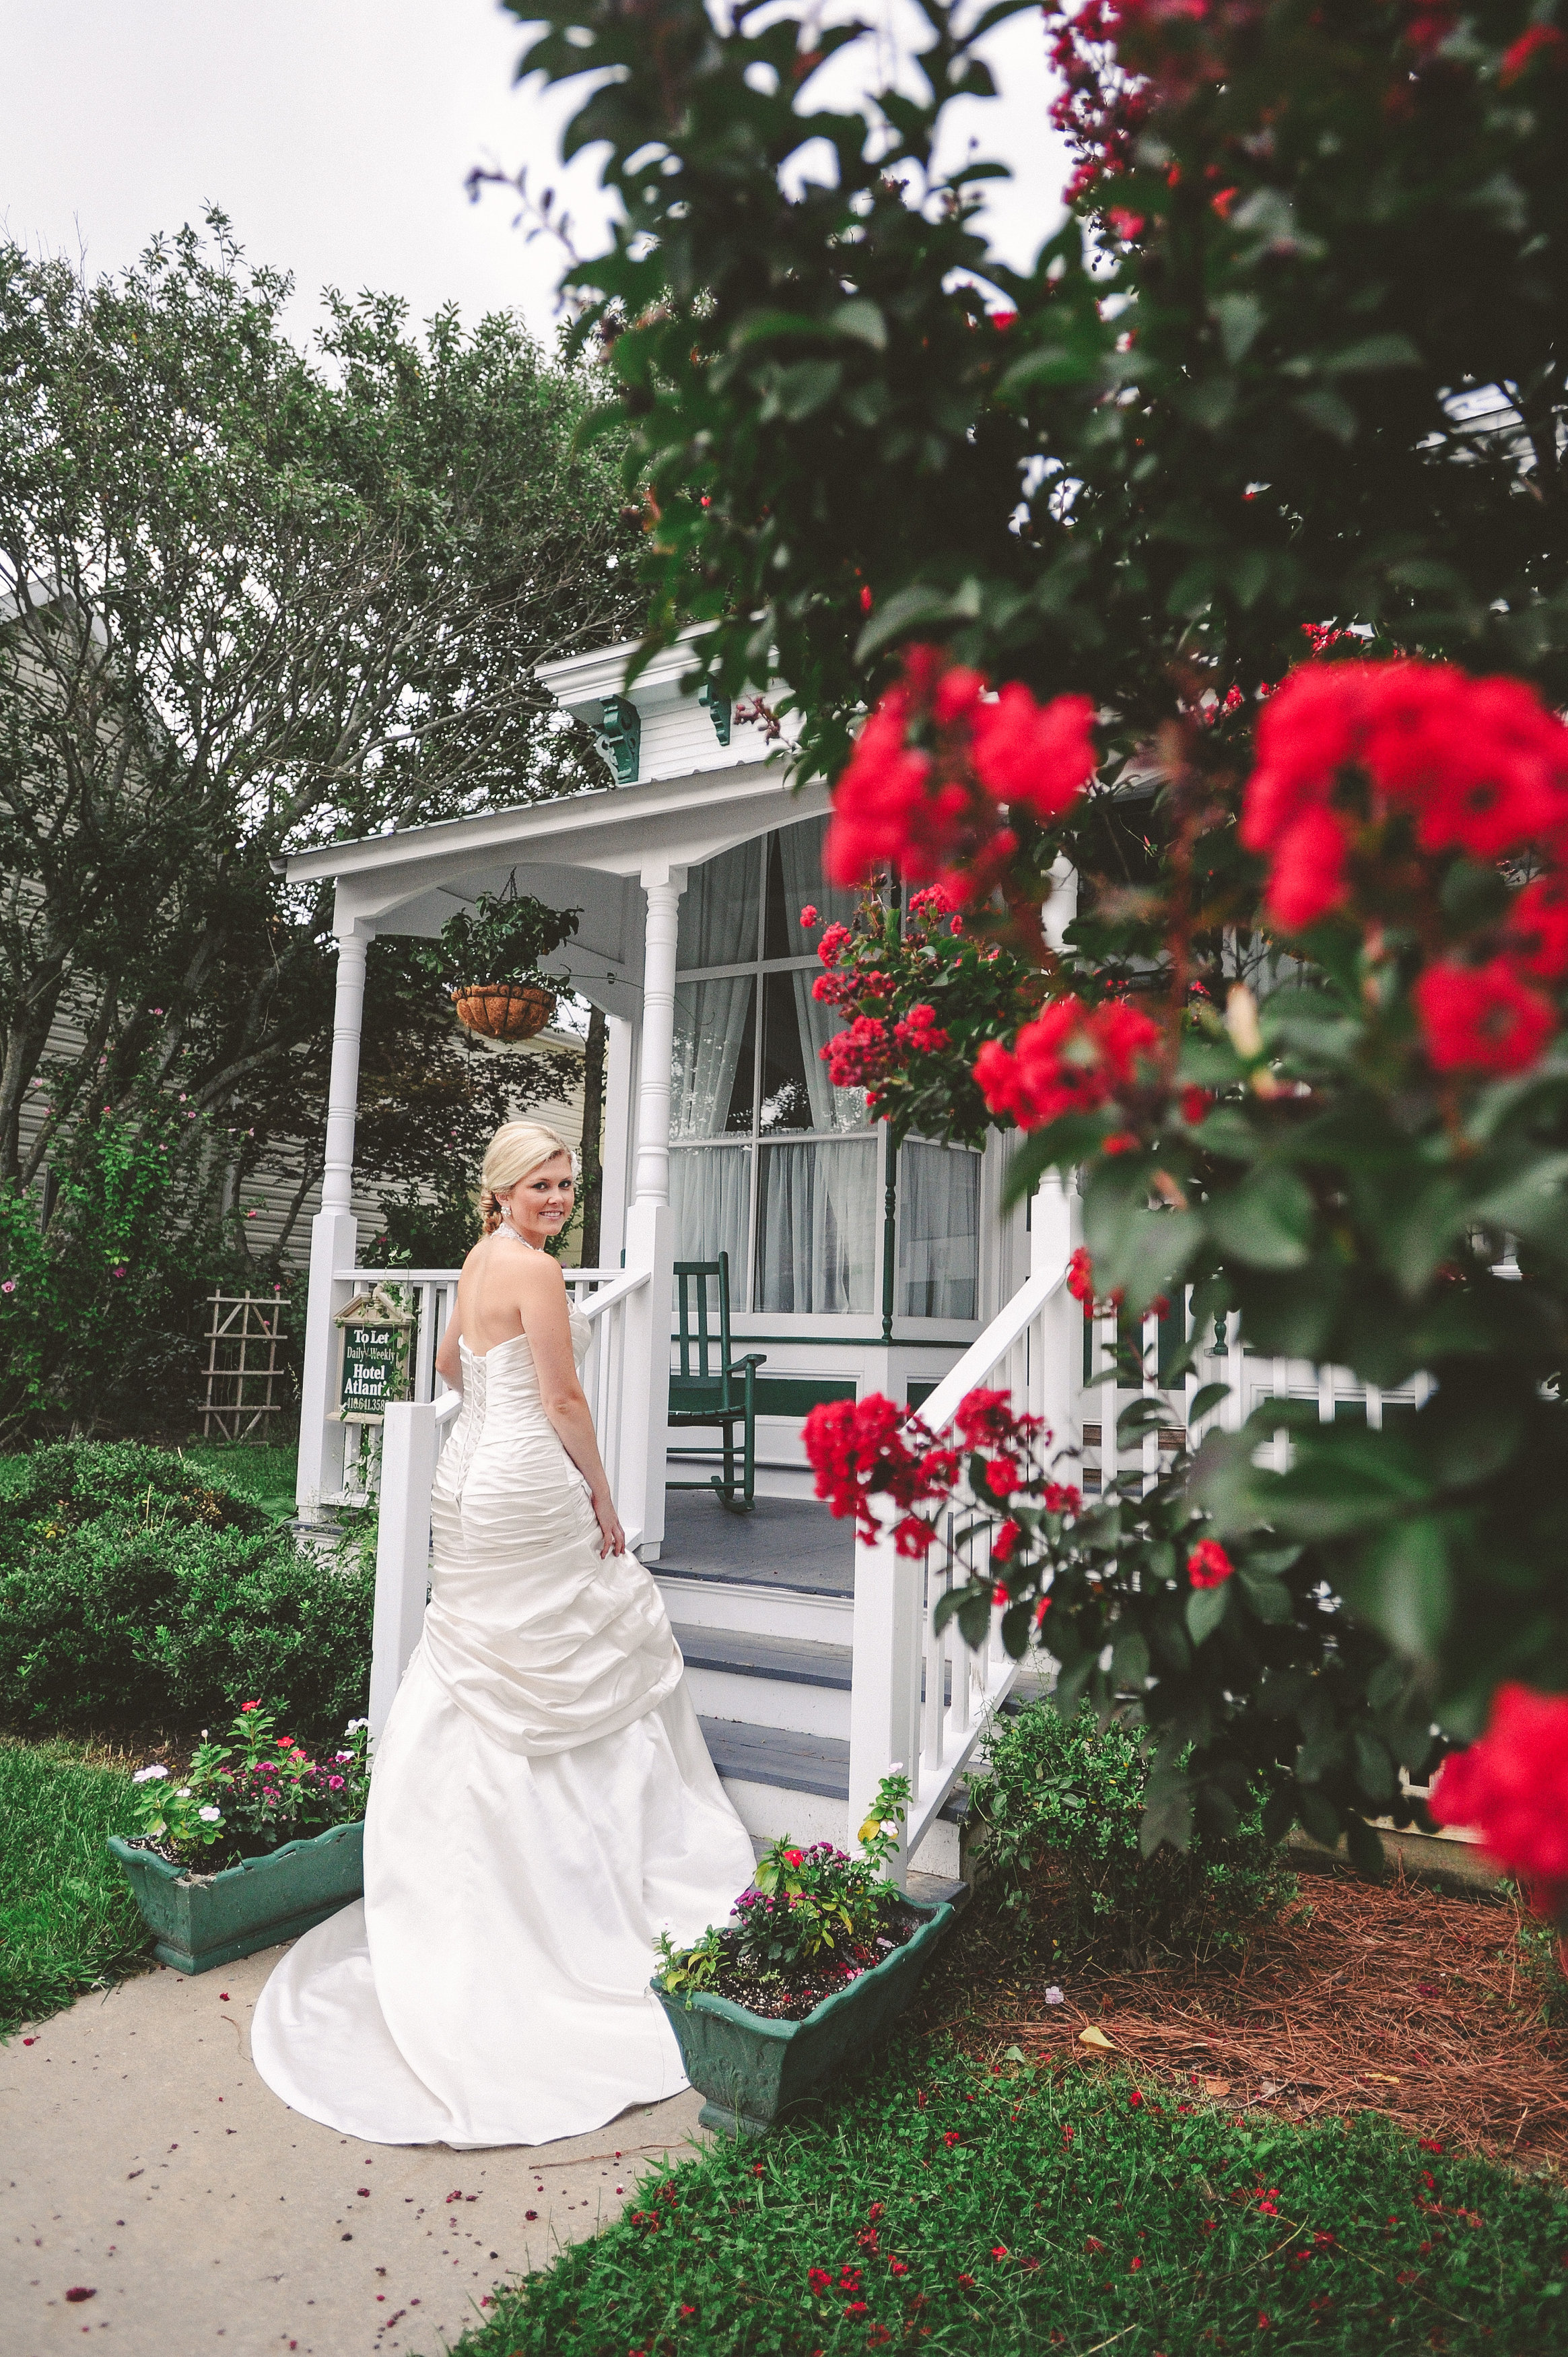 Weddings Main   The Atlantic Hotel   Historic Berlin MD Bride standing back to front porch with red flowers Berlin MD Bustle Gown